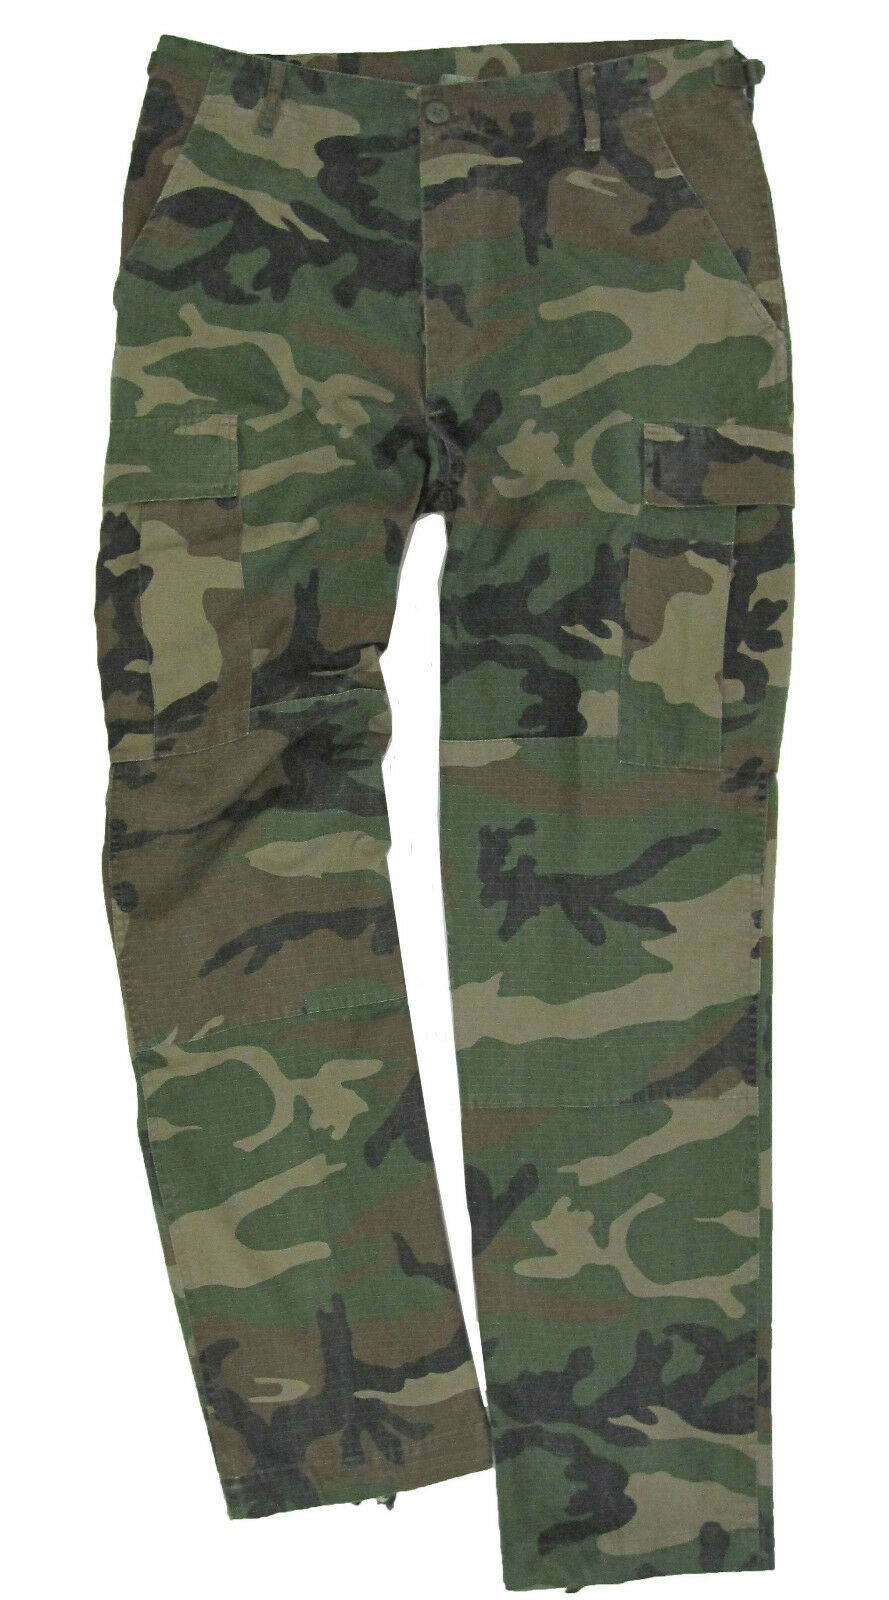 BDU Woodland Camo Rip Stop Trousers - Army Military Cotton Combats New